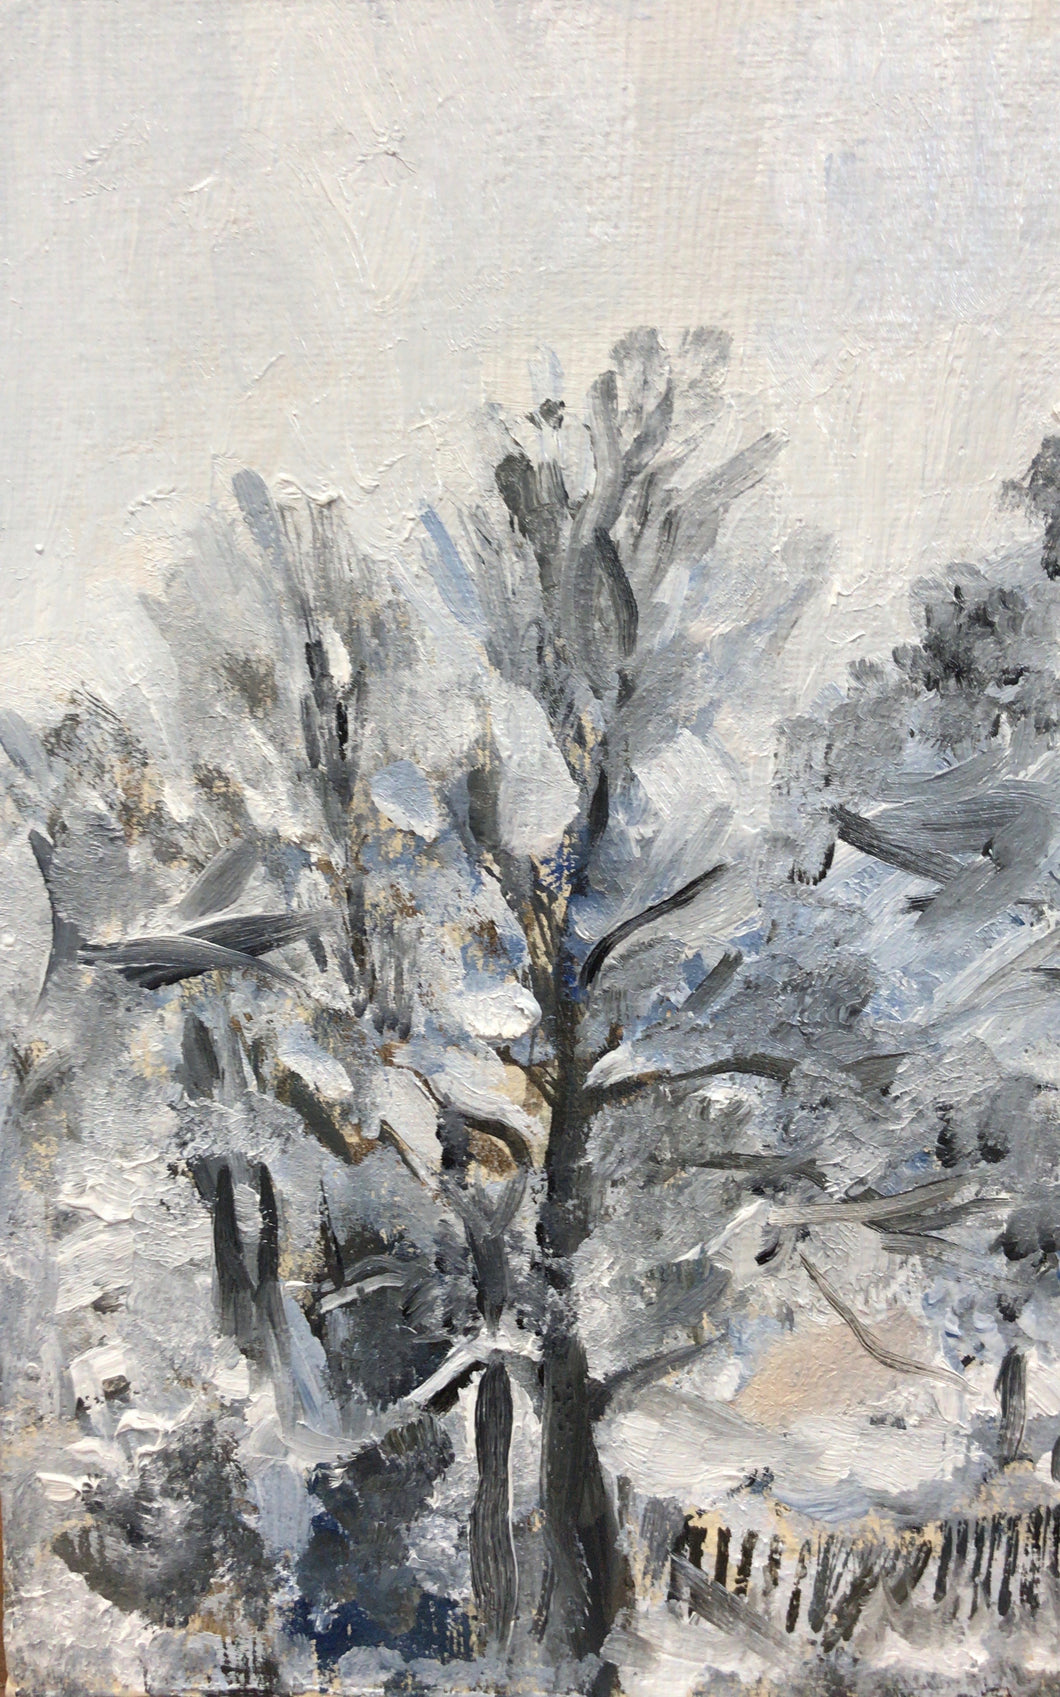 White on White, 18 x 13 cm, oil on canvas panel